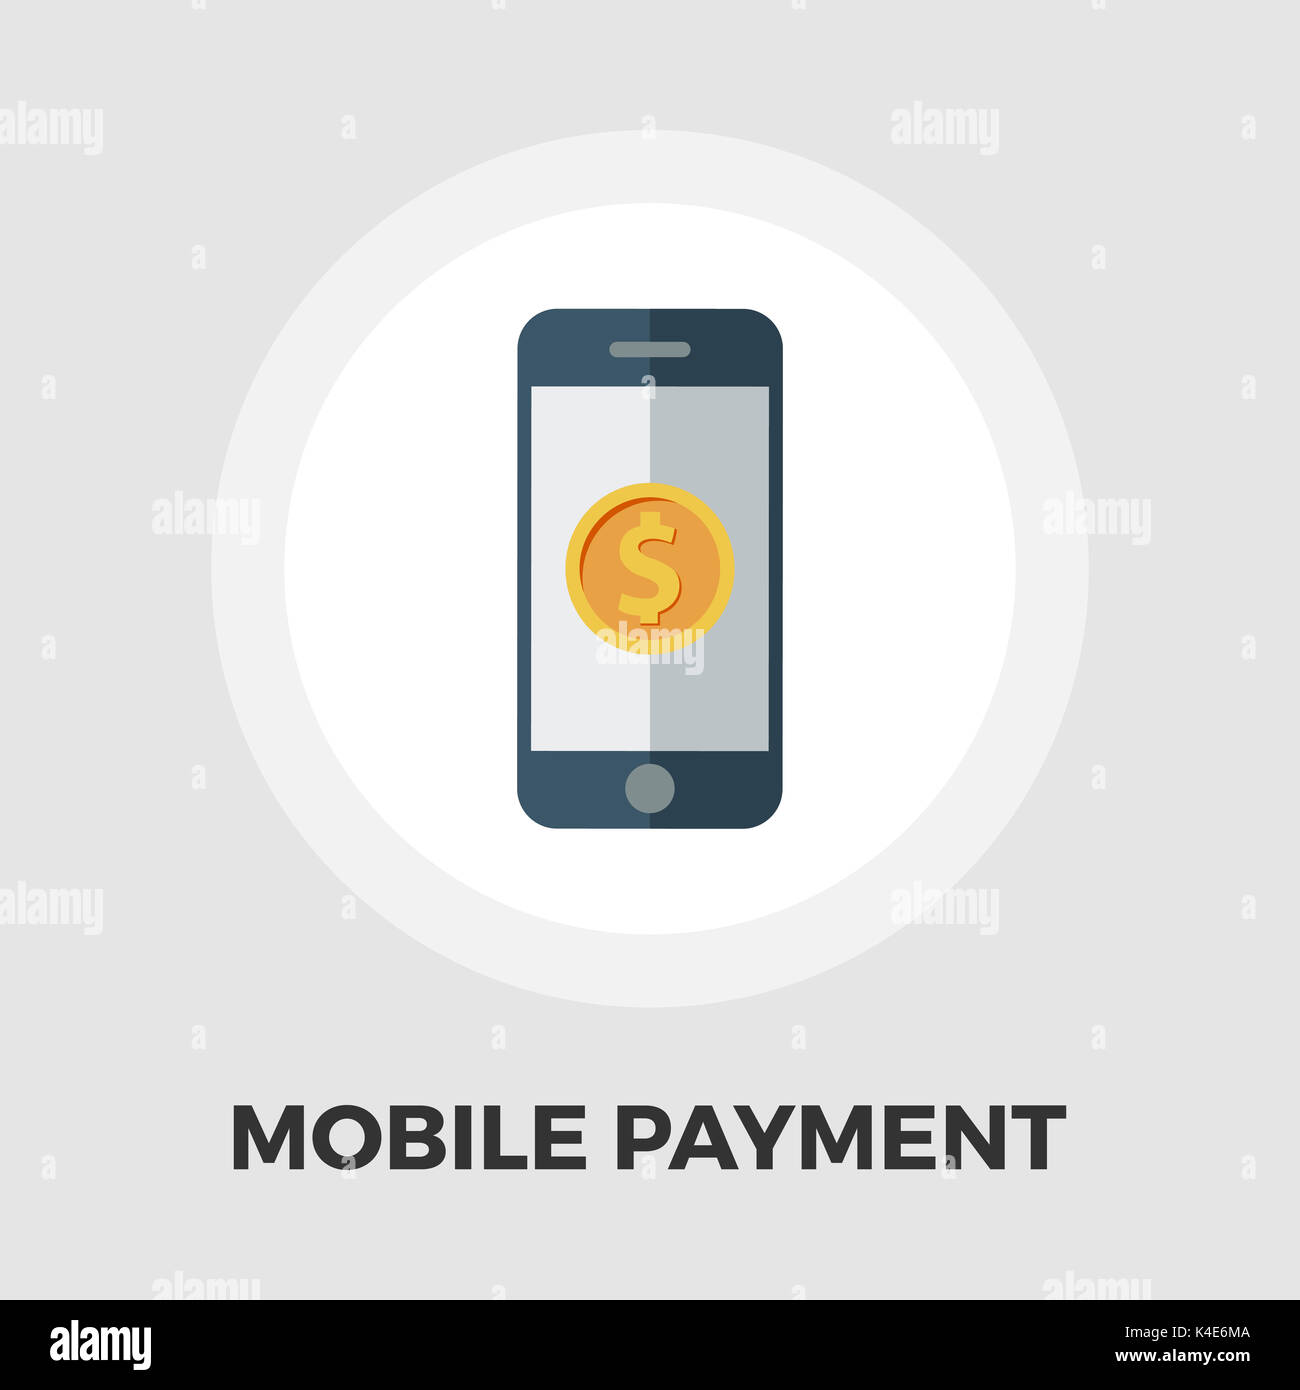 Mobile payment icon vector. Flat icon isolated on the white background. Editable EPS file. Vector illustration. - Stock Image